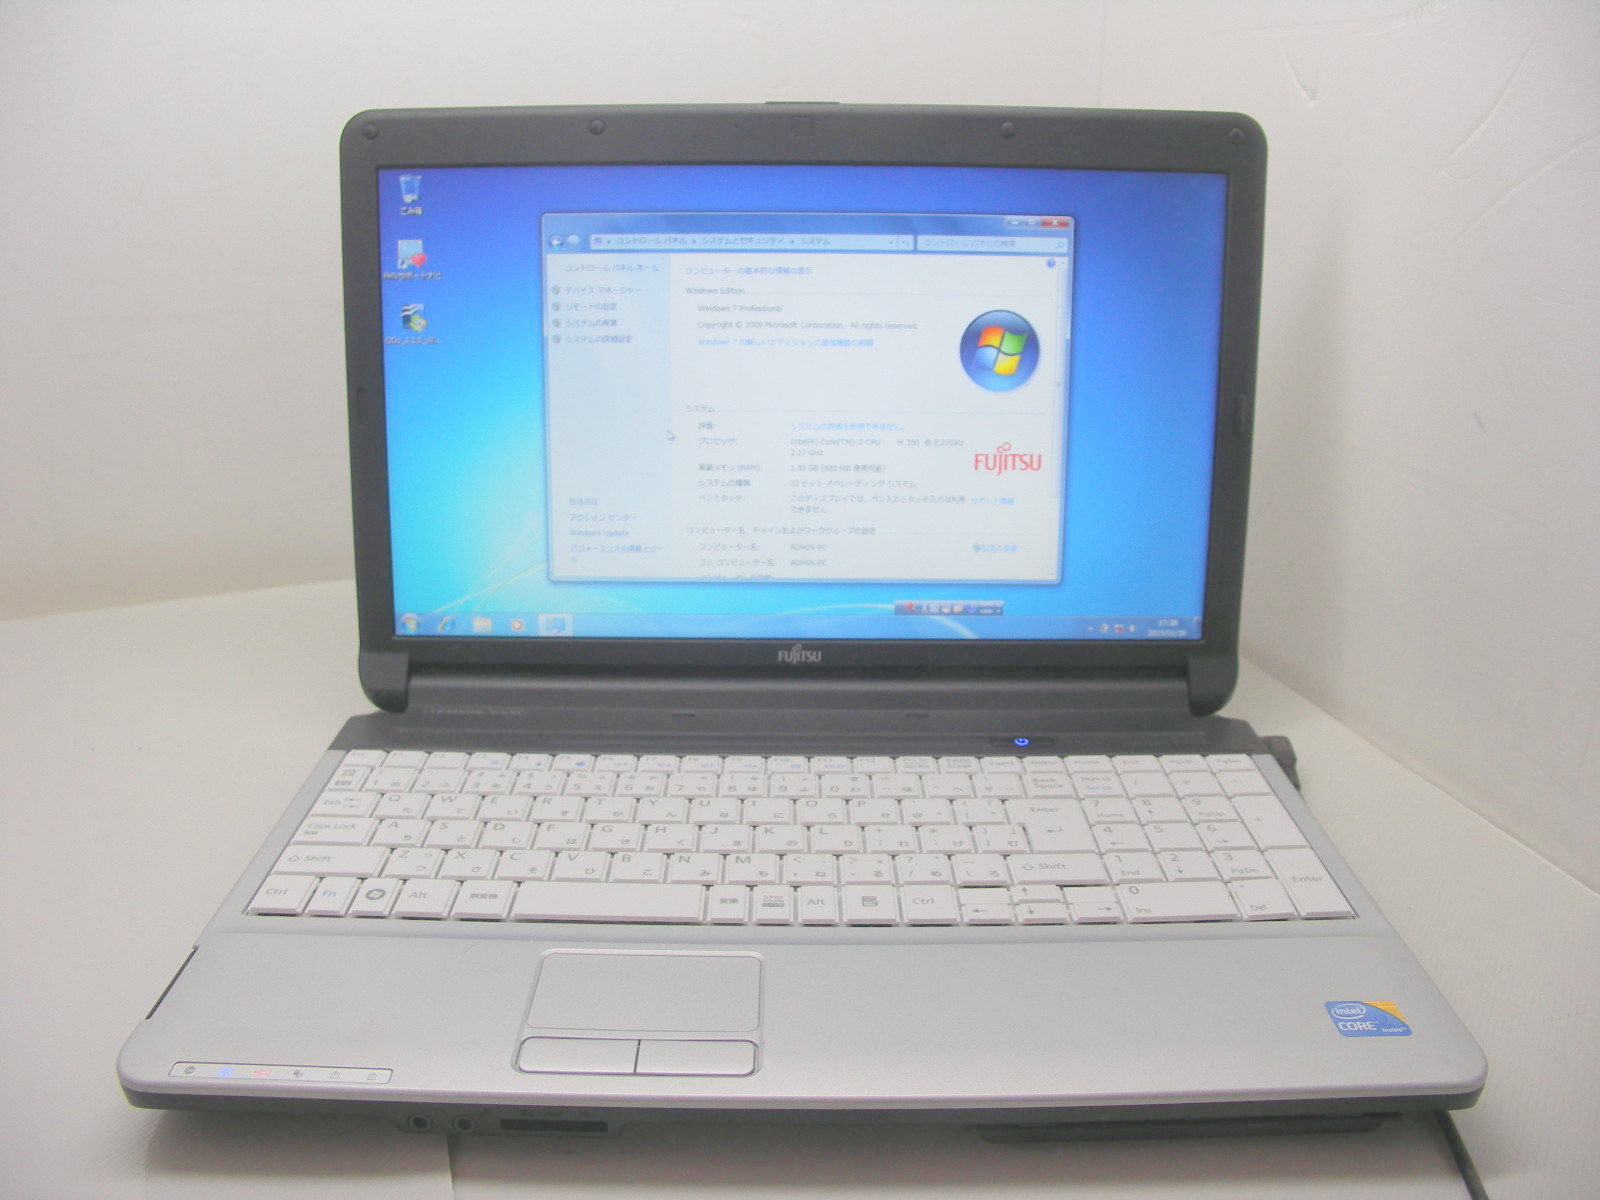 LIFEBOOK A530/AX i3 2.27GHz 160GB 2GB Win7 難有(小)【中古】【送料無料】